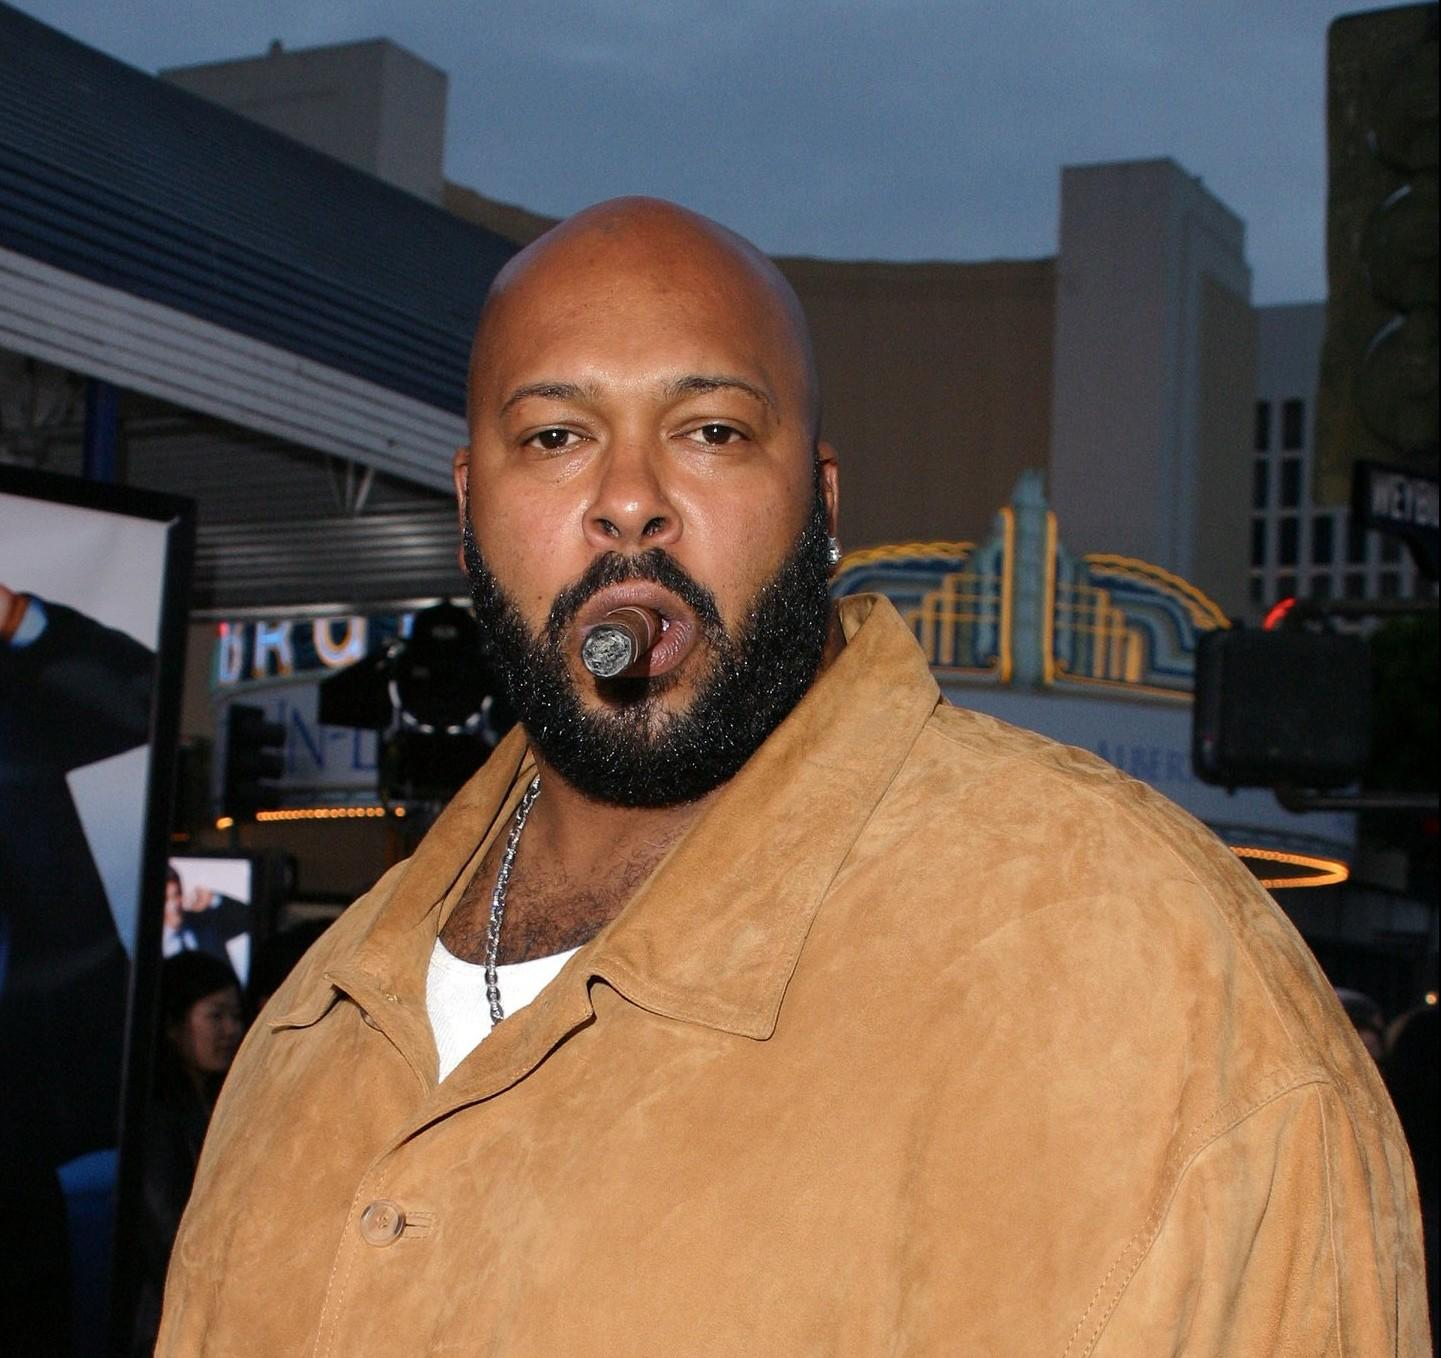 Rapper+Suge+Knight+was+hospitalized+Wednesday+morning%2C+one+day+after+pleading+%22Not+Guilty%22+to+murder+charges.+Photo+courtesy+of+Tribune+News+Services.